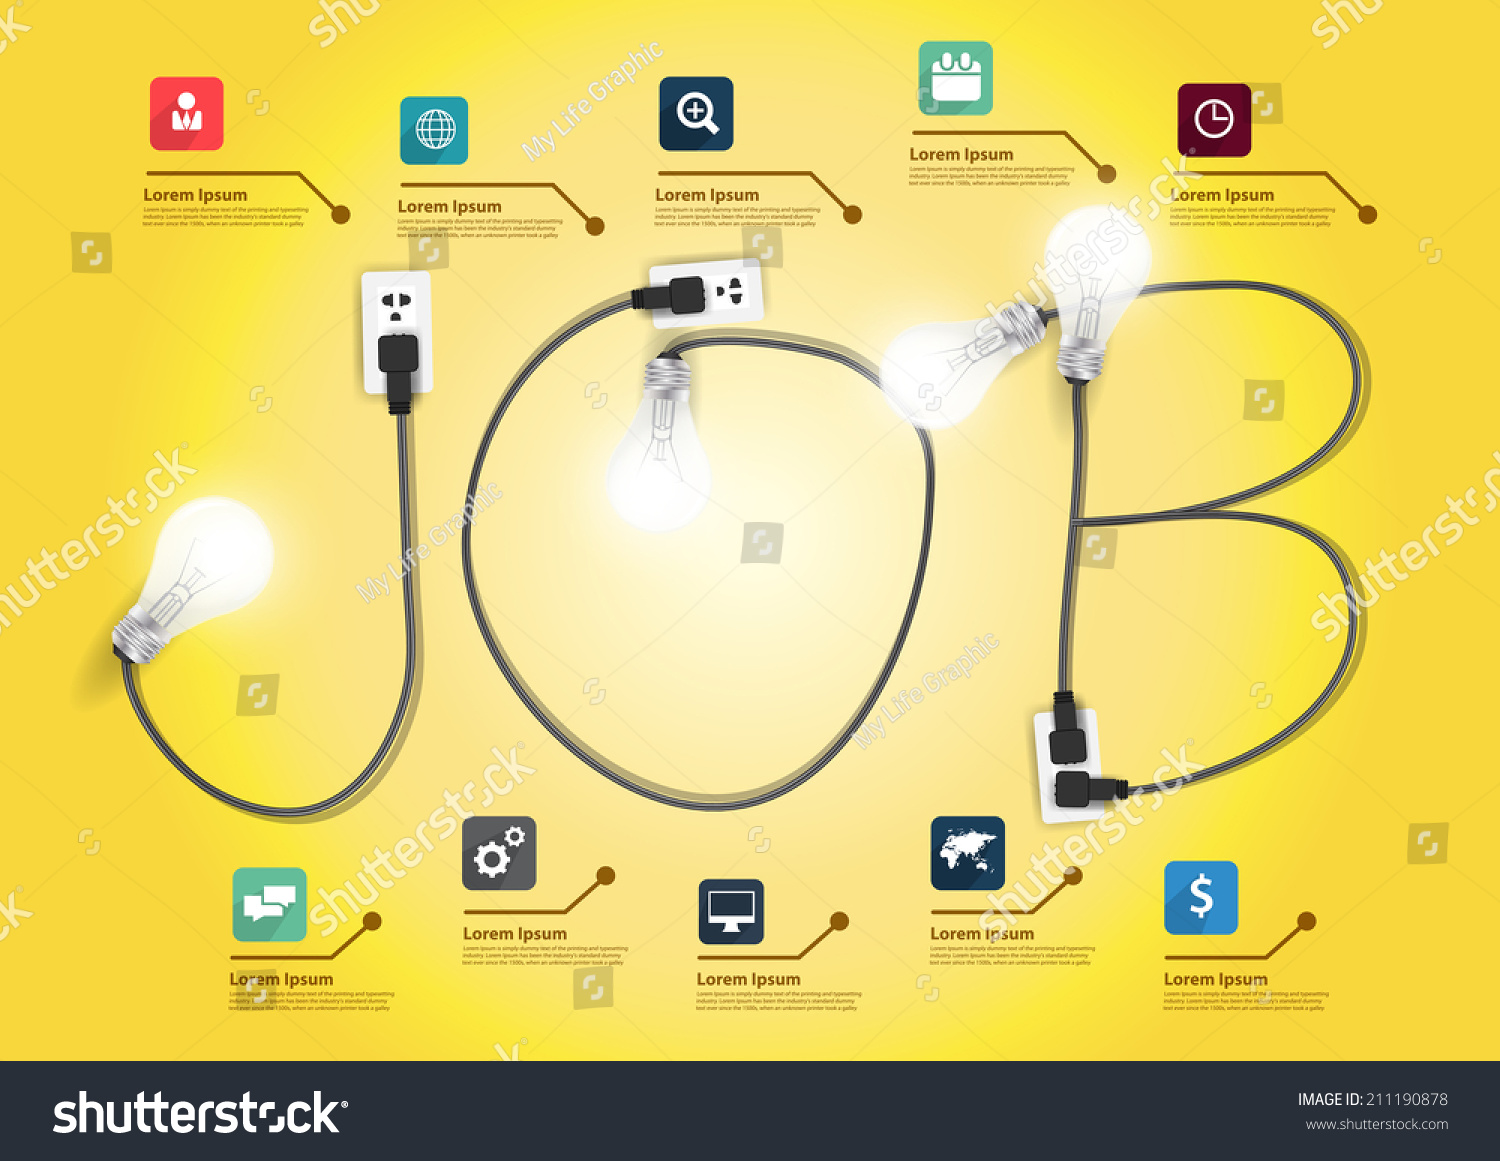 job concept creative light bulb ideas stock vector  job concept creative light bulb ideas business flat icons set abstract info graphic